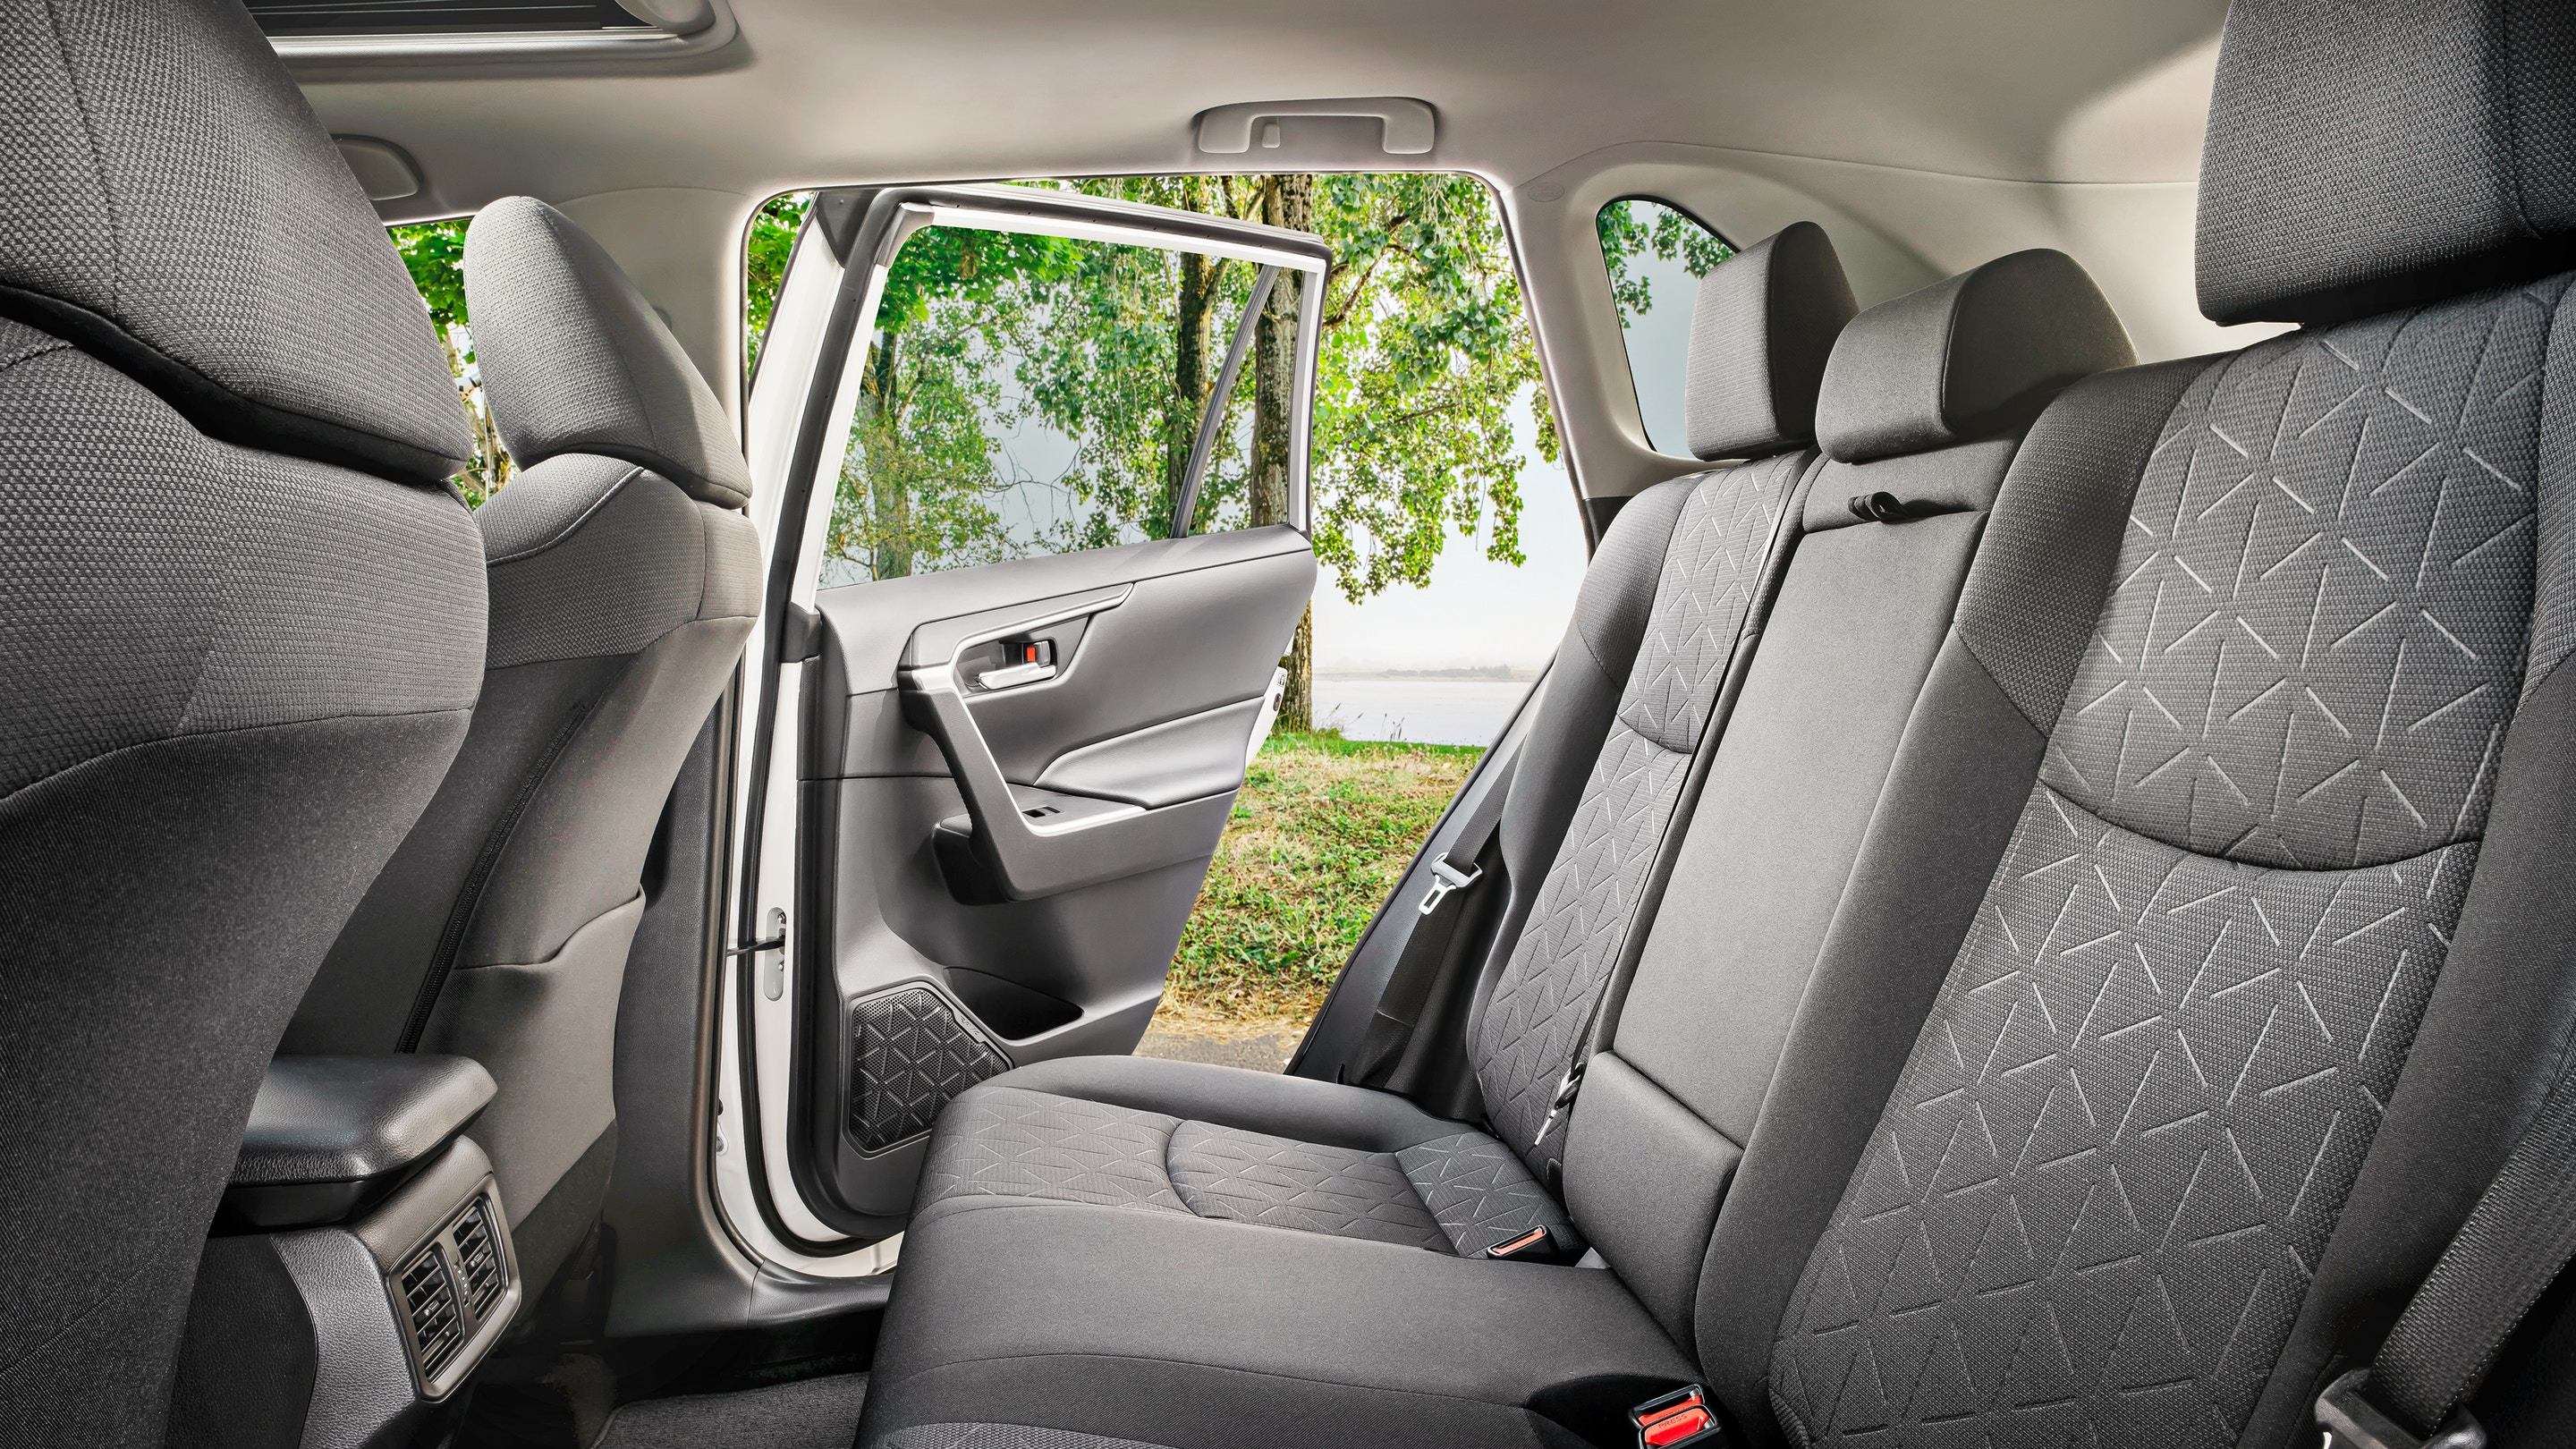 Spacious Seating in the Toyota RAV4